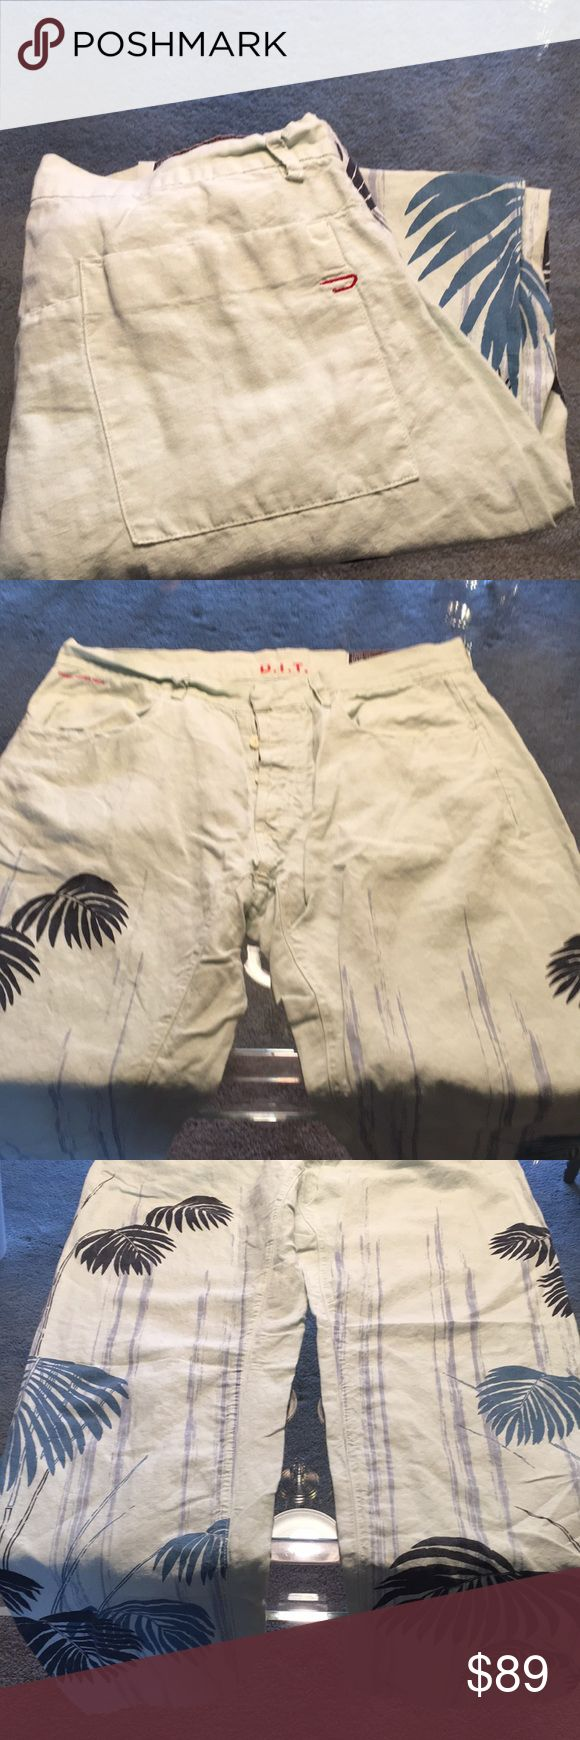 ⭐️DIESEL MENS PRINTED PANTS 💯AUTHENTIC ⭐️DIESEL MENS PRINTED PANTS 💯AUTHENTIC . TRUE HIGH END STYLE AND LUXURY. COMFORTABLE LINEN PANTS. PURCHASED  AT THE DIESEL BOUTIQUE. THE SIZE IS 36 AND THE INSEAM IS 33 INCHES.  LIGHT BOTTOM OF LEG SMUDGES BUT STILL AMAZING. WHAT STYLISH PANTS! STRAIGHT LEG Diesel Pants